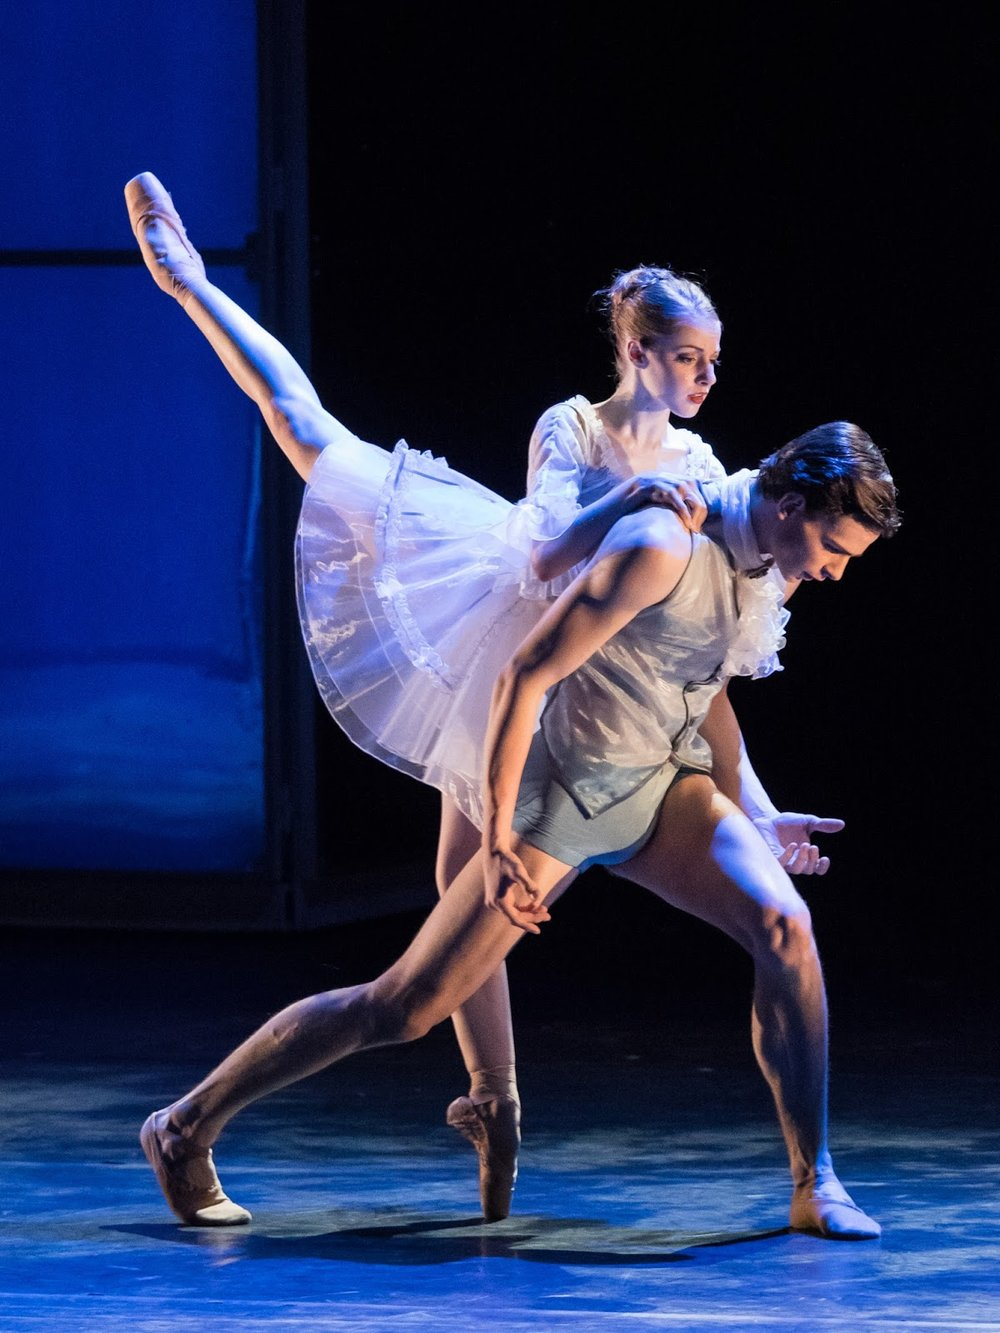 Jakob Feyferlik & Natascha Mair / Copyright: Ashley Taylor